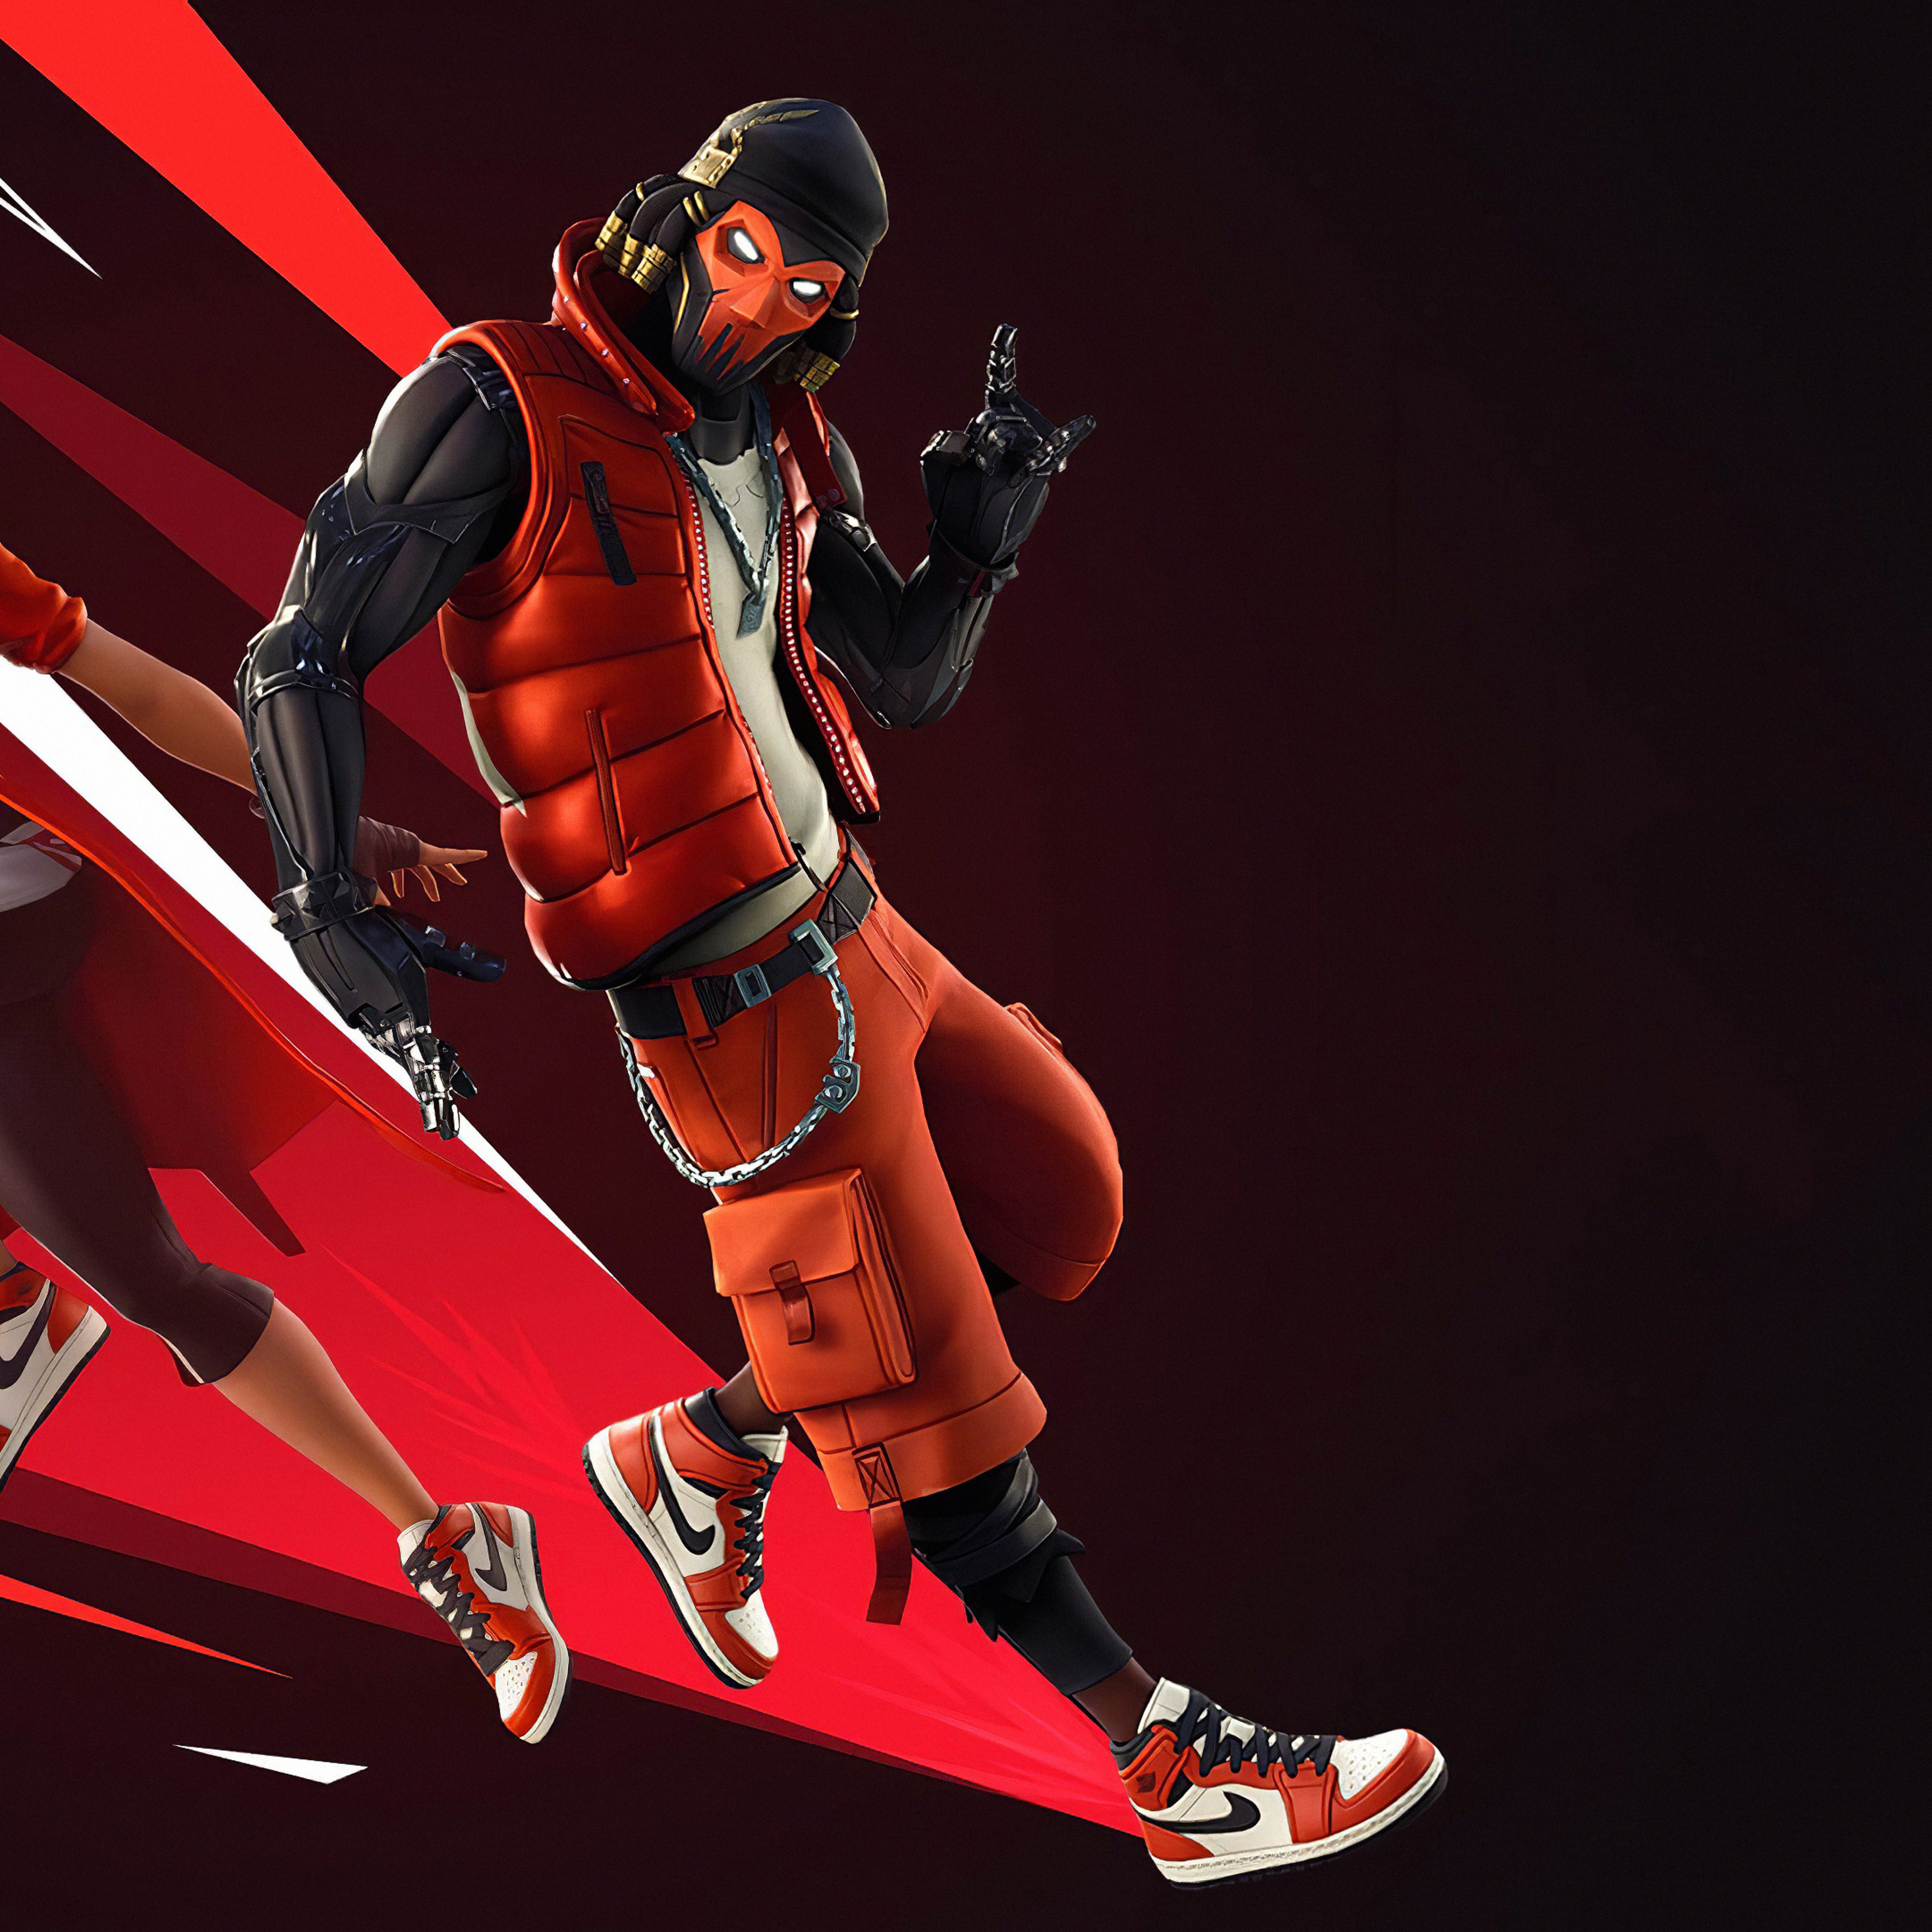 2932x2932 Fortnite Jordan 4k Ipad Pro Retina Display Hd 4k Wallpapers Images Backgrounds Photos And Pictures